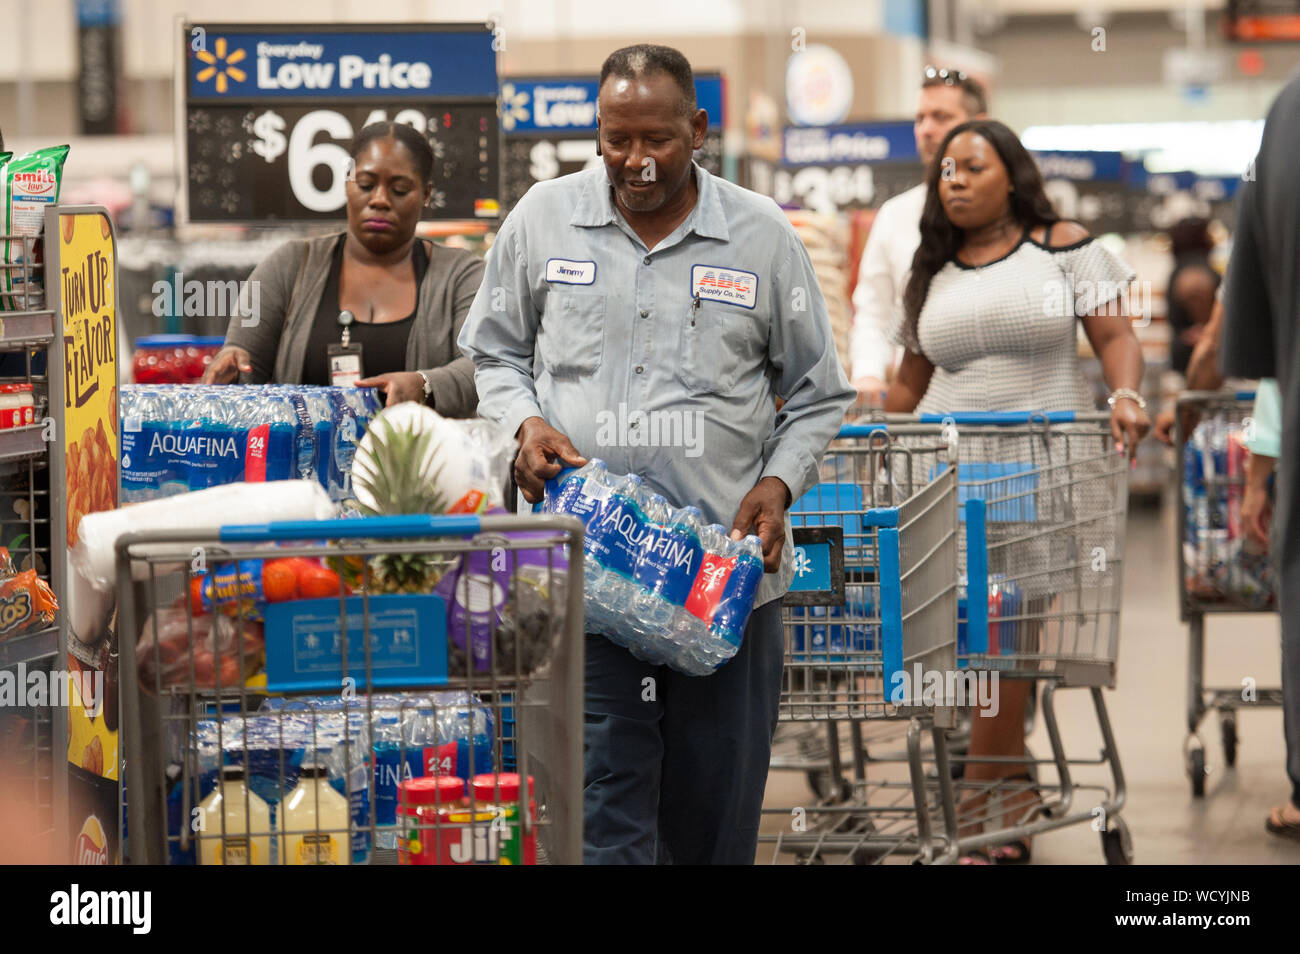 Fort Lauderdale, Florida, USA. 28th Aug, 2019. Residents of Florida stock up with groceries and water in preperation for hurricane Dorian, in Fort Lauderdale, Fla. Florida Governor, Ron Desantis, declared a state of emergency for 26 counties in Florida, as Hurricane is forecast to hit Florida as a major category 3 hurricane Credit: Orit Ben-Ezzer/ZUMA Wire/Alamy Live News Stock Photo